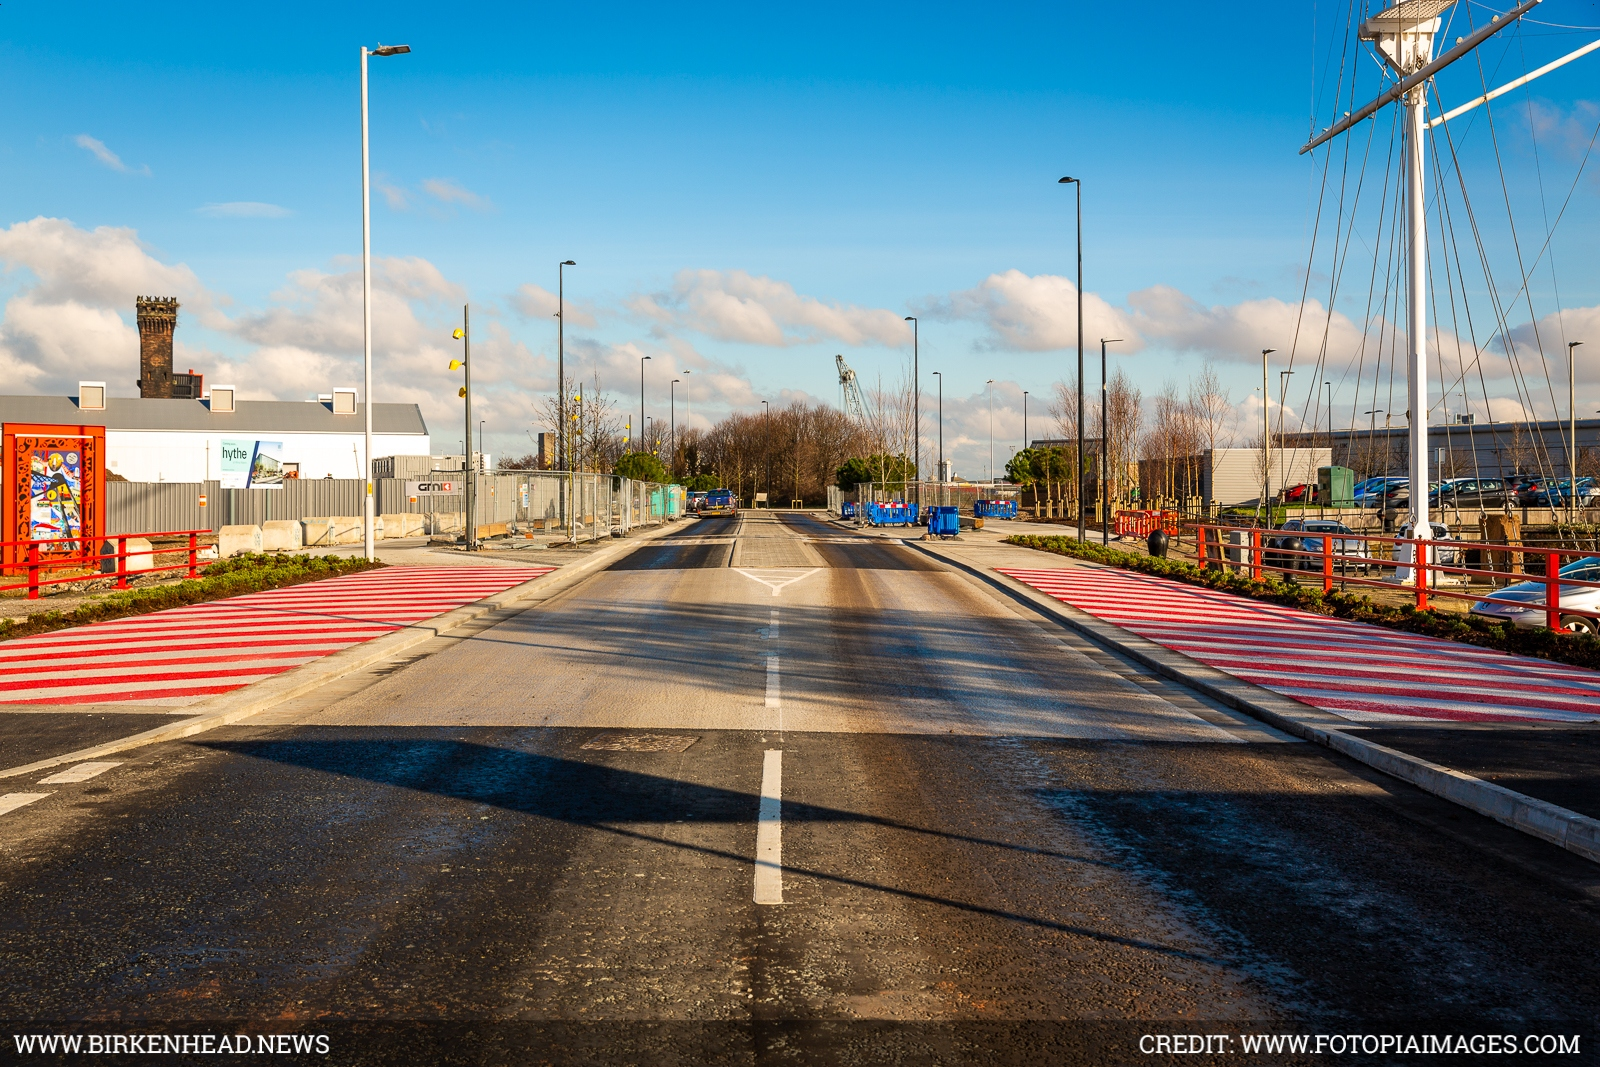 Tower Road - carriageways have been narrowed, allowing for wider pavements